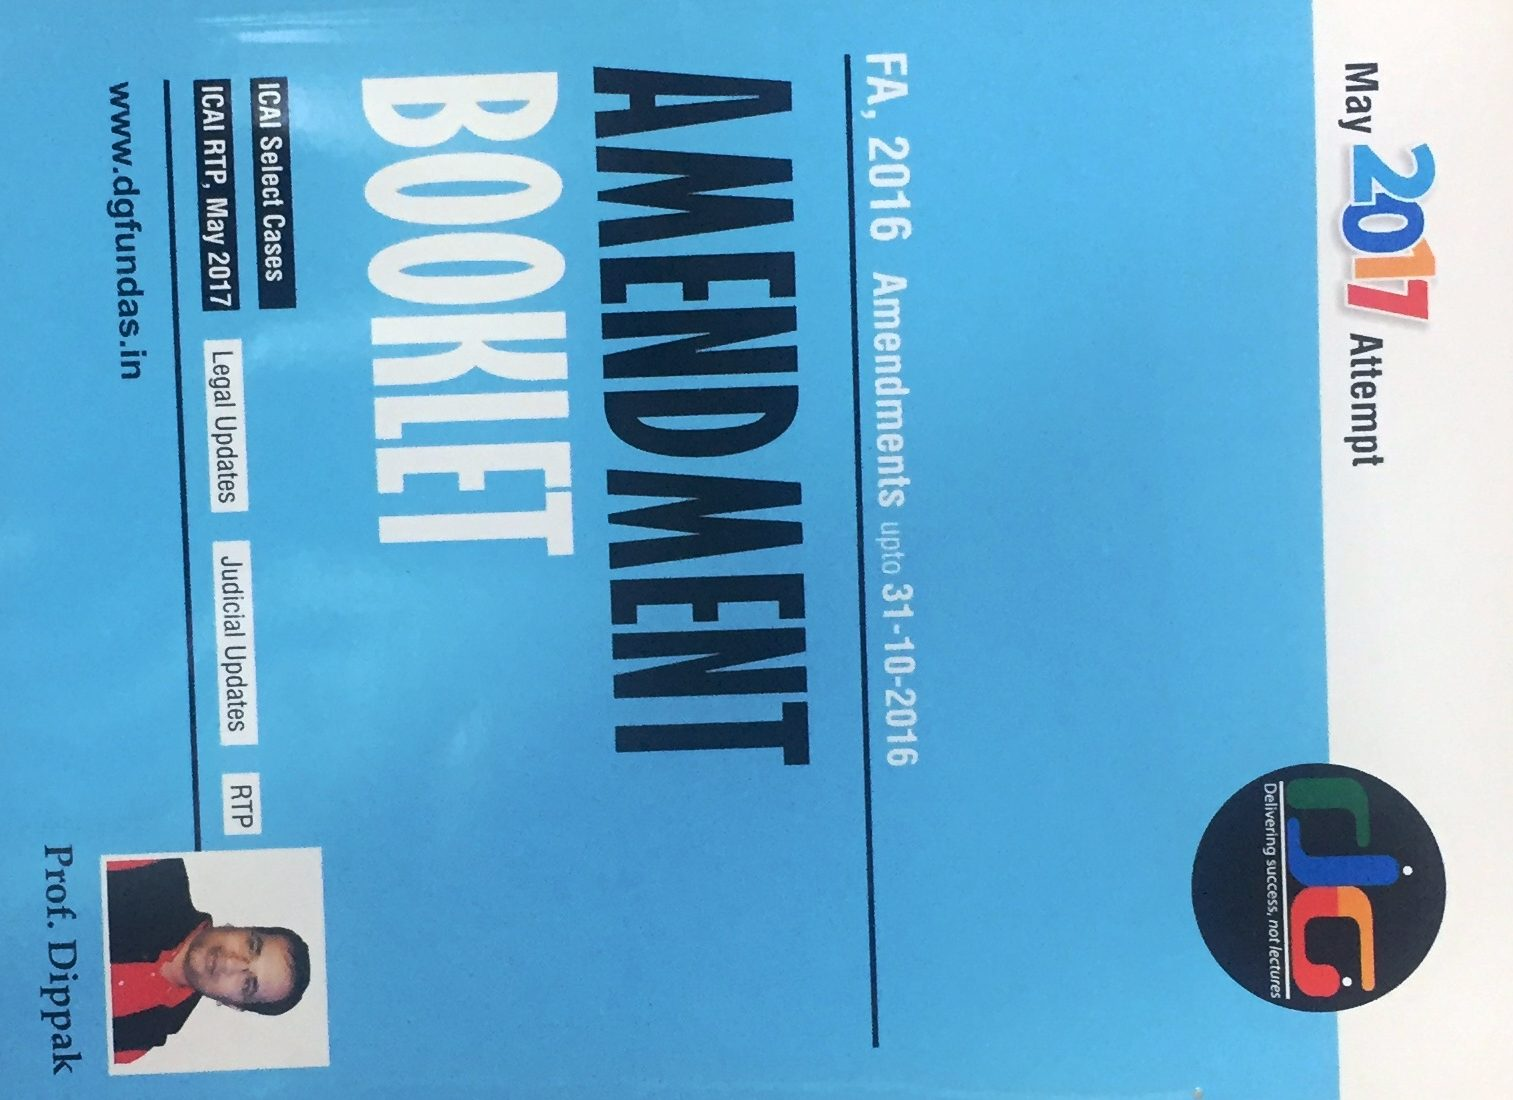 Indirect Tax Amendment Booklet for CA Final by Prof Dippak Gupta (DG Education)Applicable For May 2020 Exam